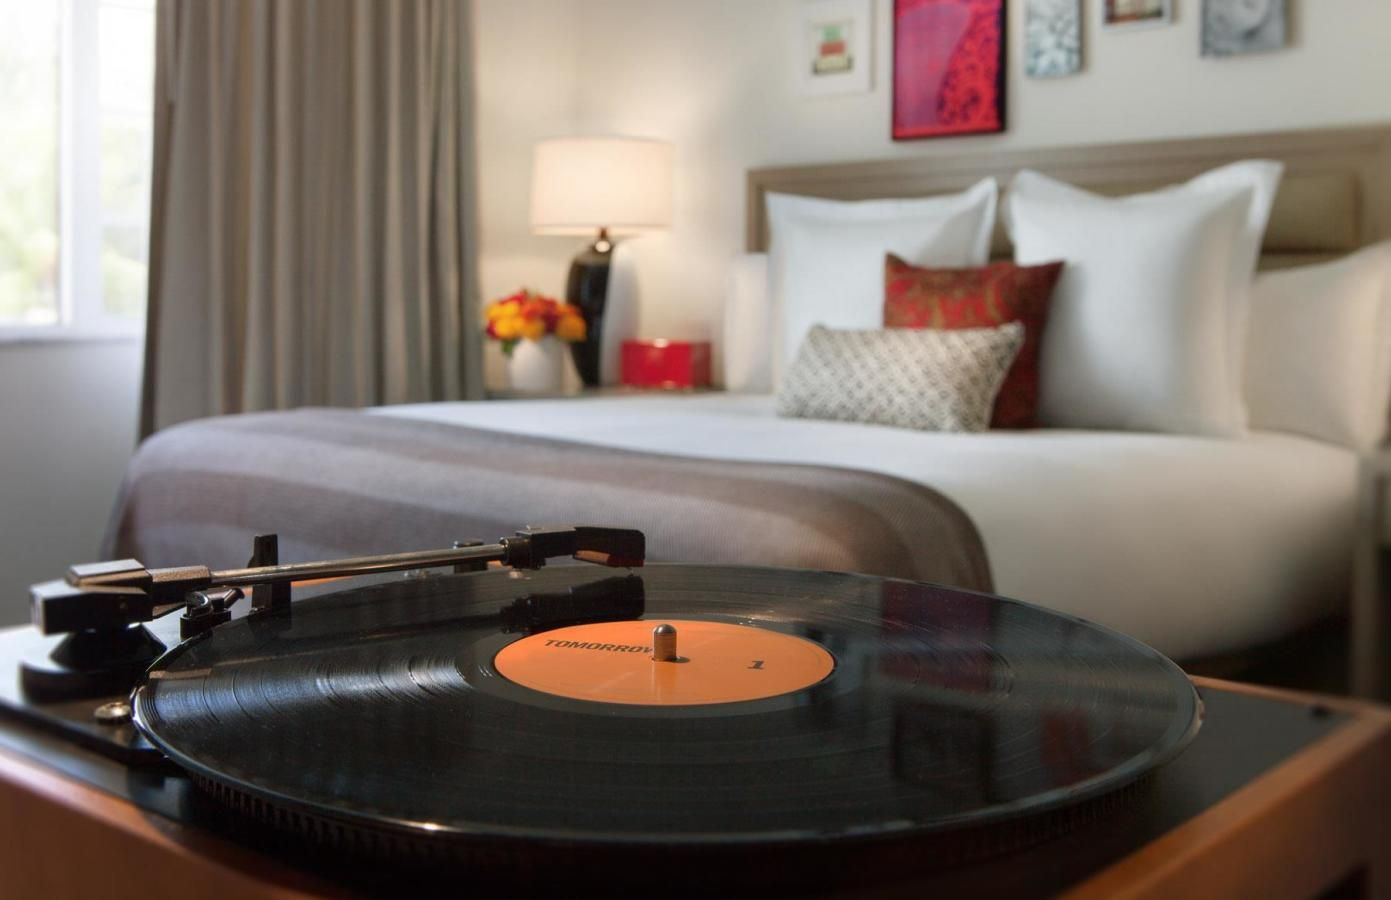 Vinyl collection curated by Capitol Records.